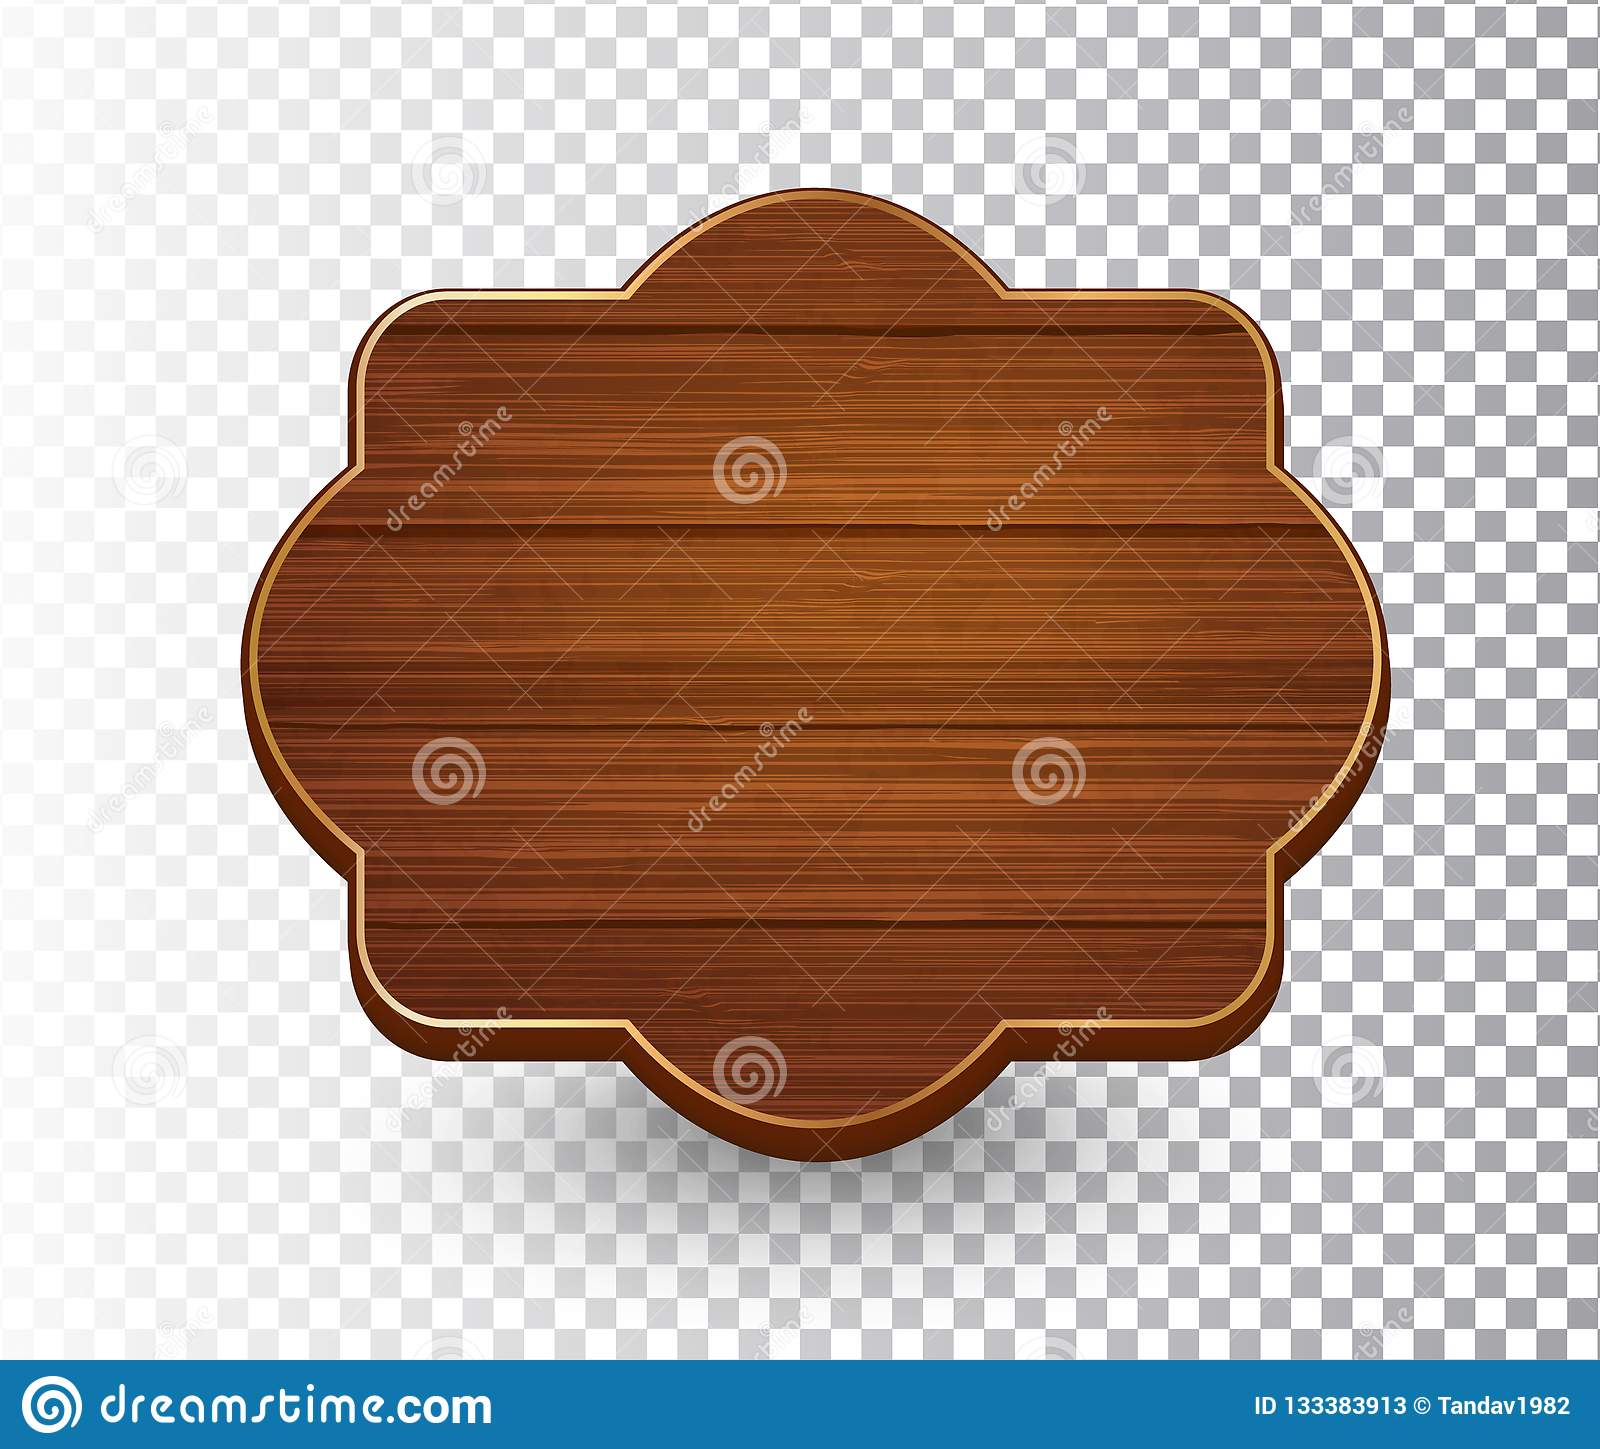 657dce94d8e7 Wooden isolated retro vintage frame template on transparent background.  Banner